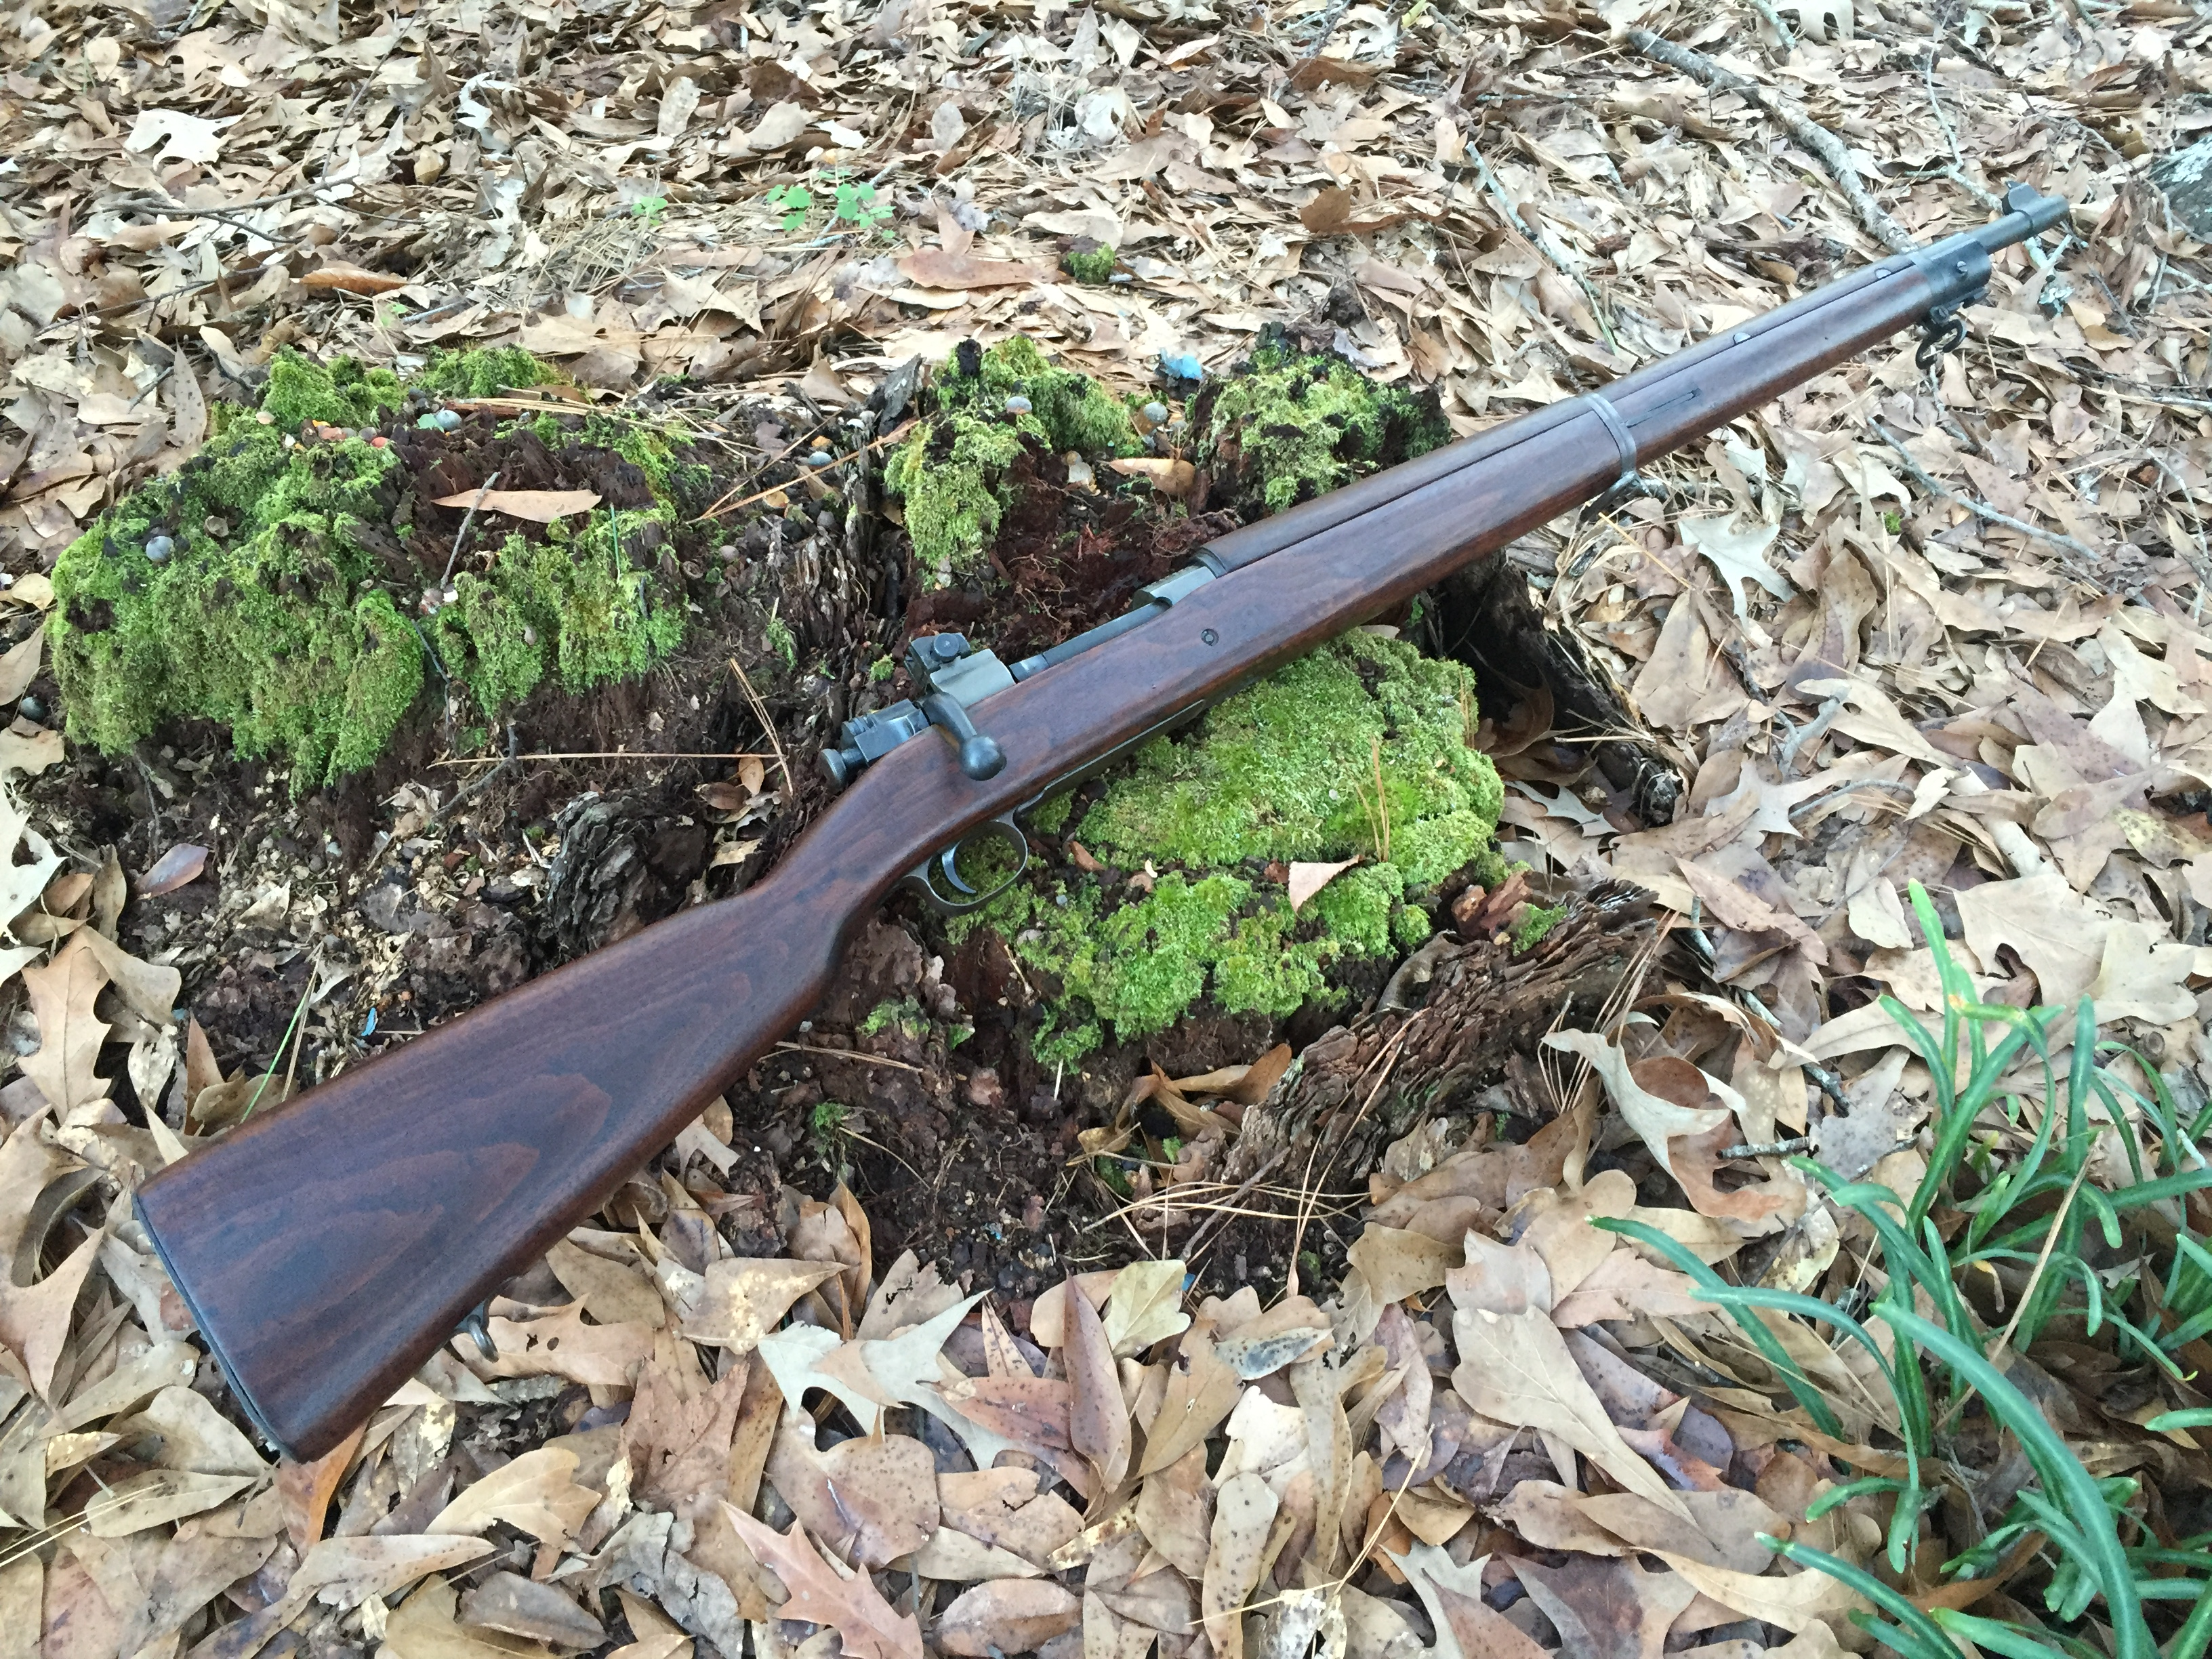 Sold - Smith Corona 1903A3 - Converted from a drill rifle